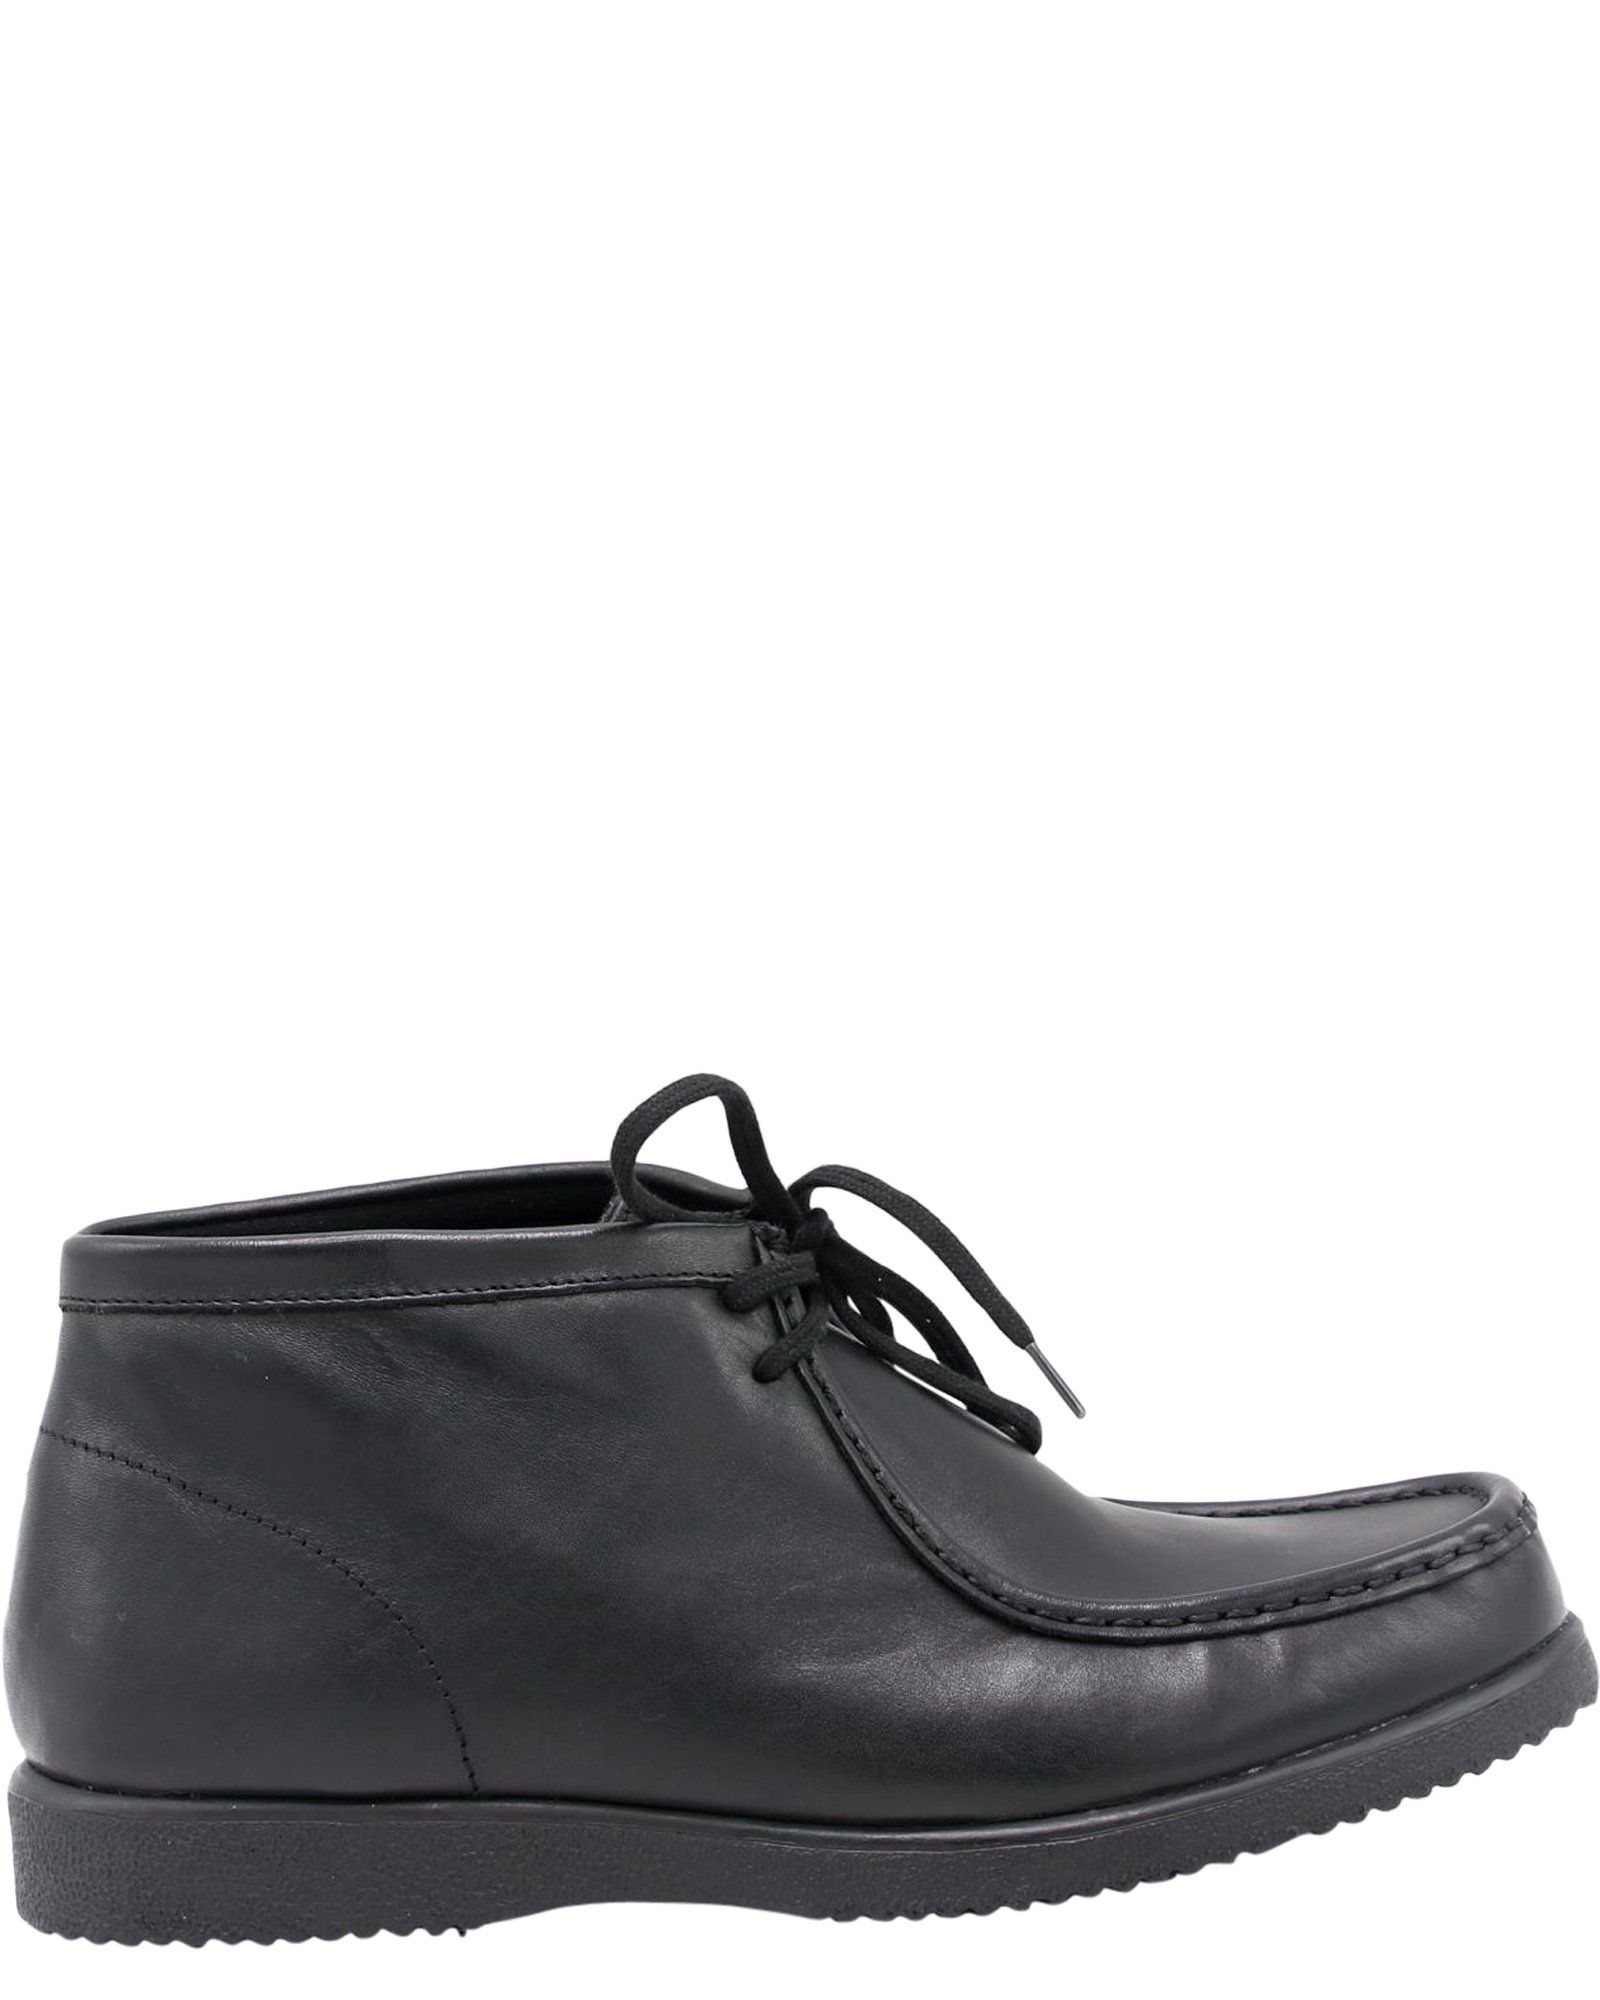 46c64b7fa9 Smooth leather upper in black. - Ankle-high boot design with padded collar